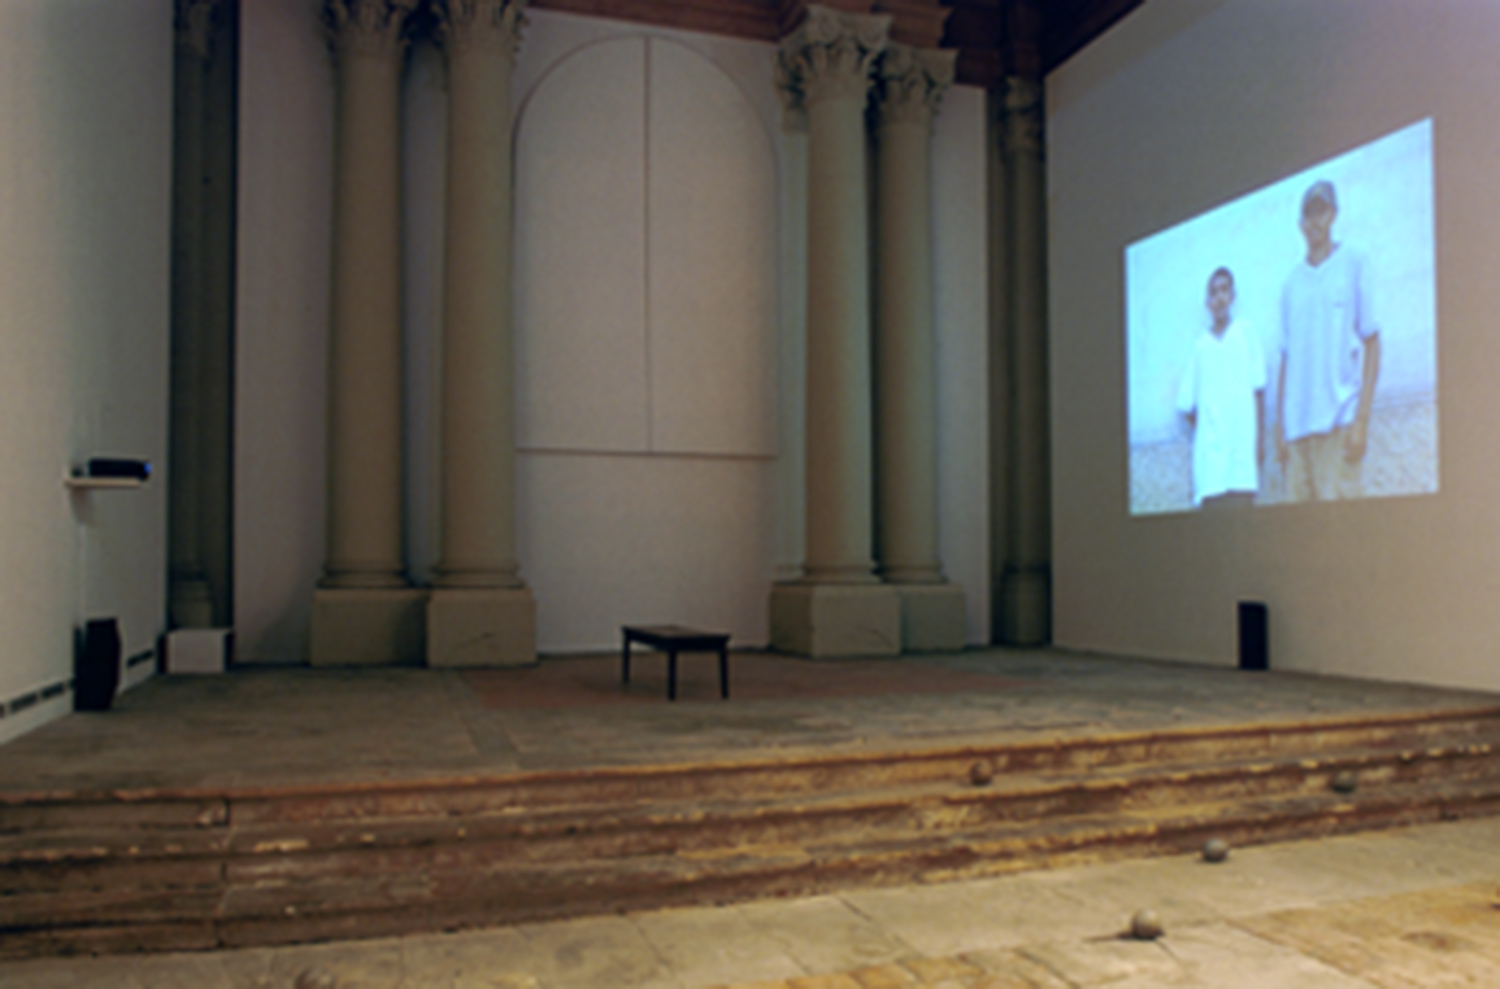 Installation view, Chapelle St.Jacques, Saint Gaudens, France